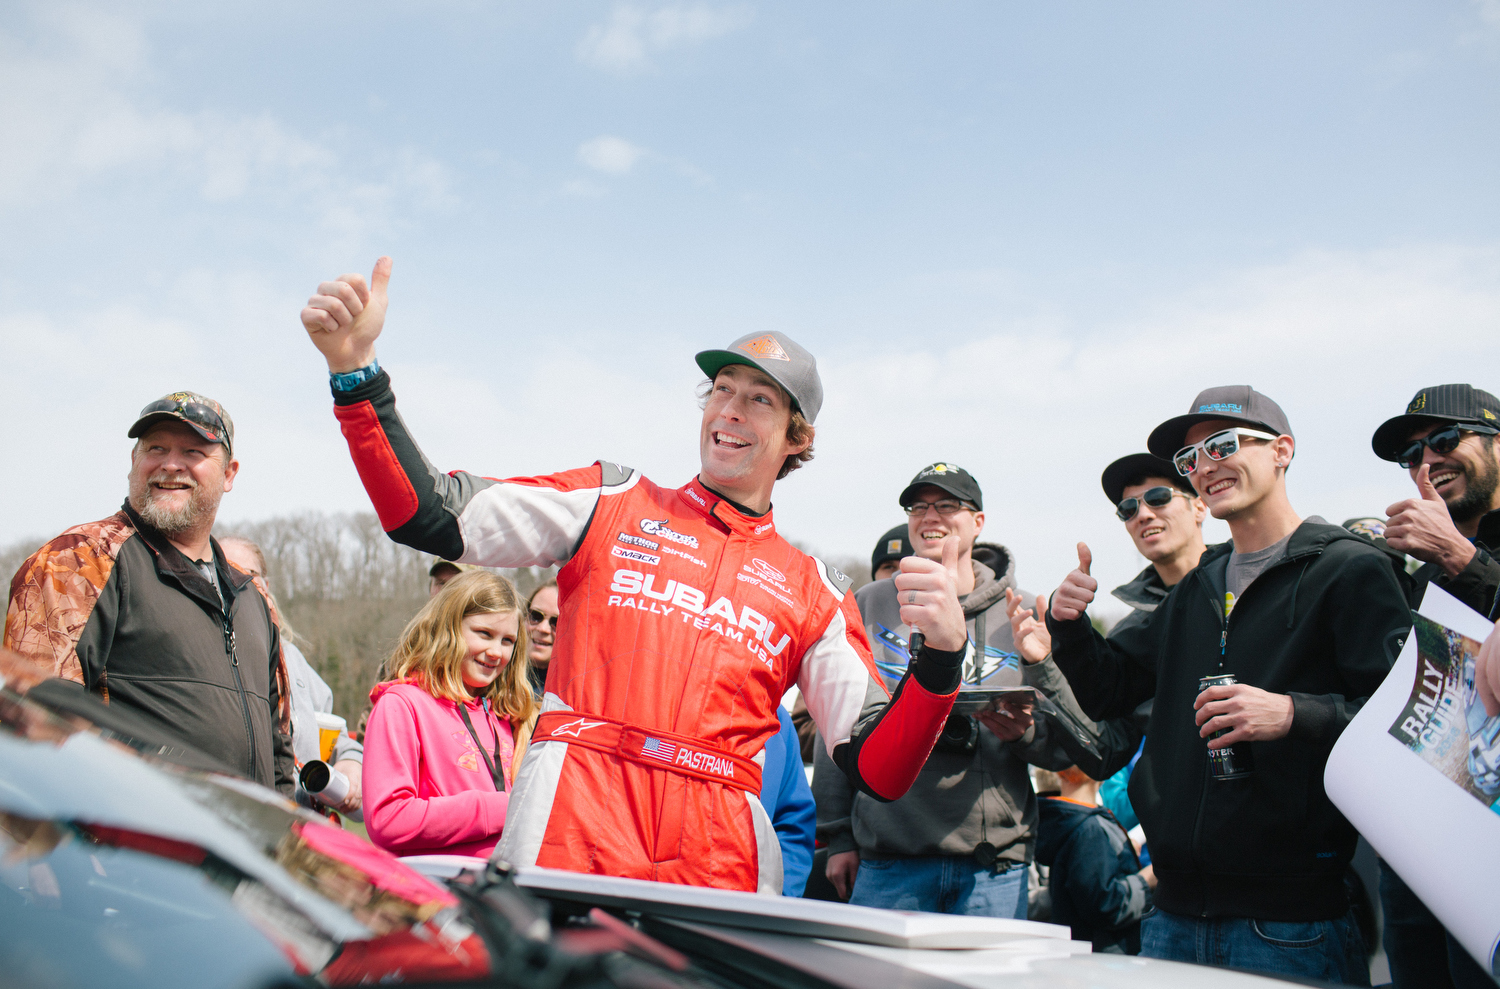 Subaru Rally Team USA driver Travis Pastrana, center, poses for a picture with fans before the start of the Rally in the 100 Acre Wood race in Steelville, Mo.